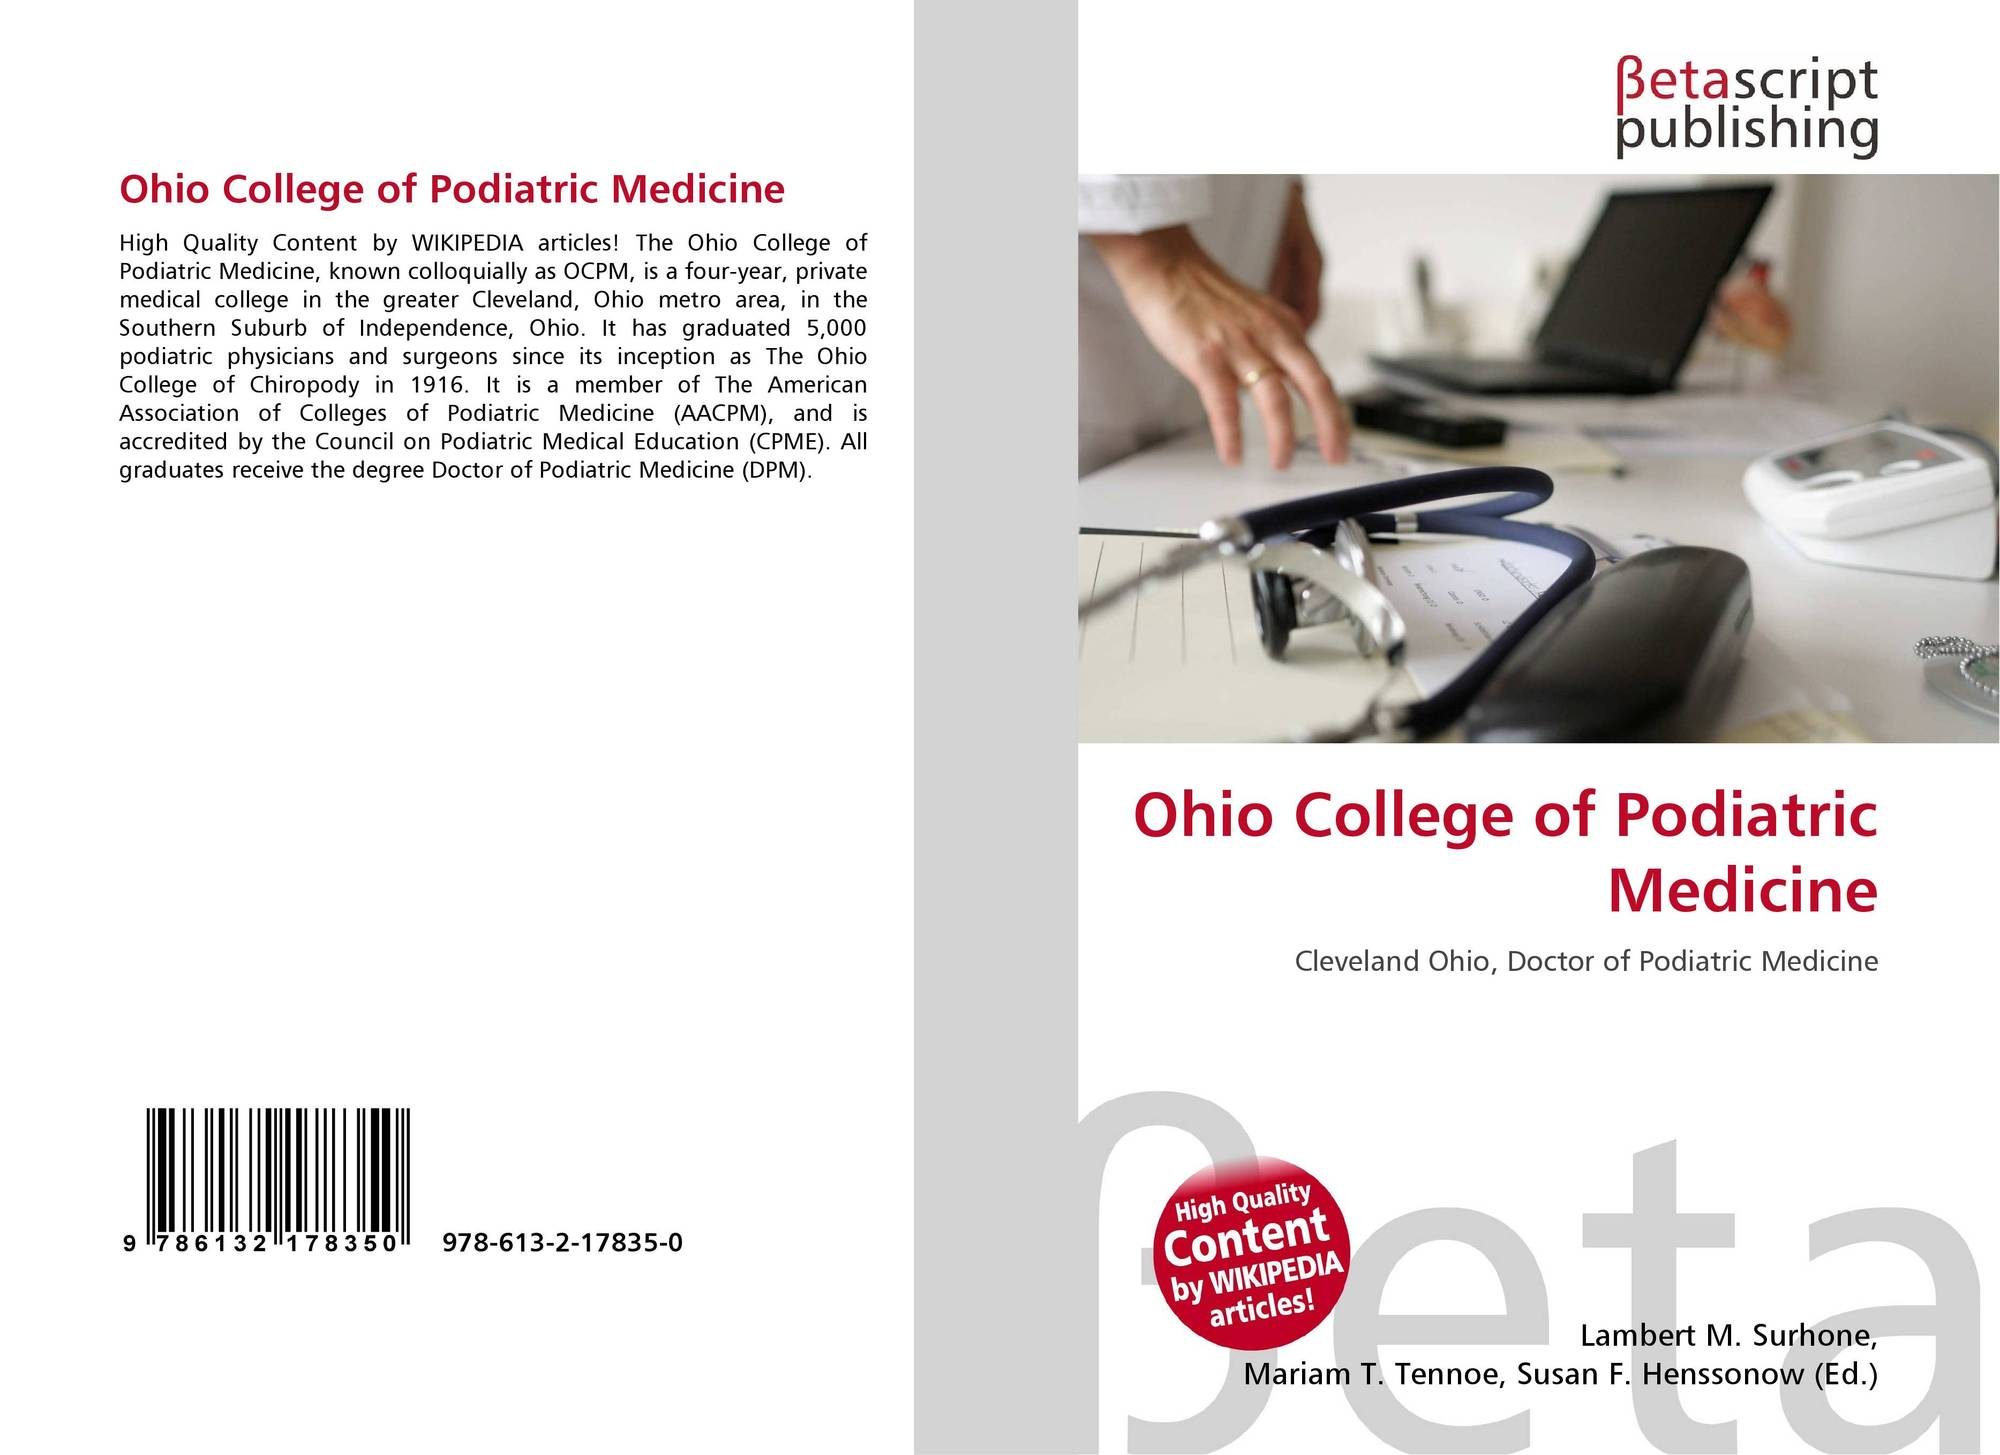 Ohio College of Podiatric Medicine, 978-613-2-17835-0, 61321